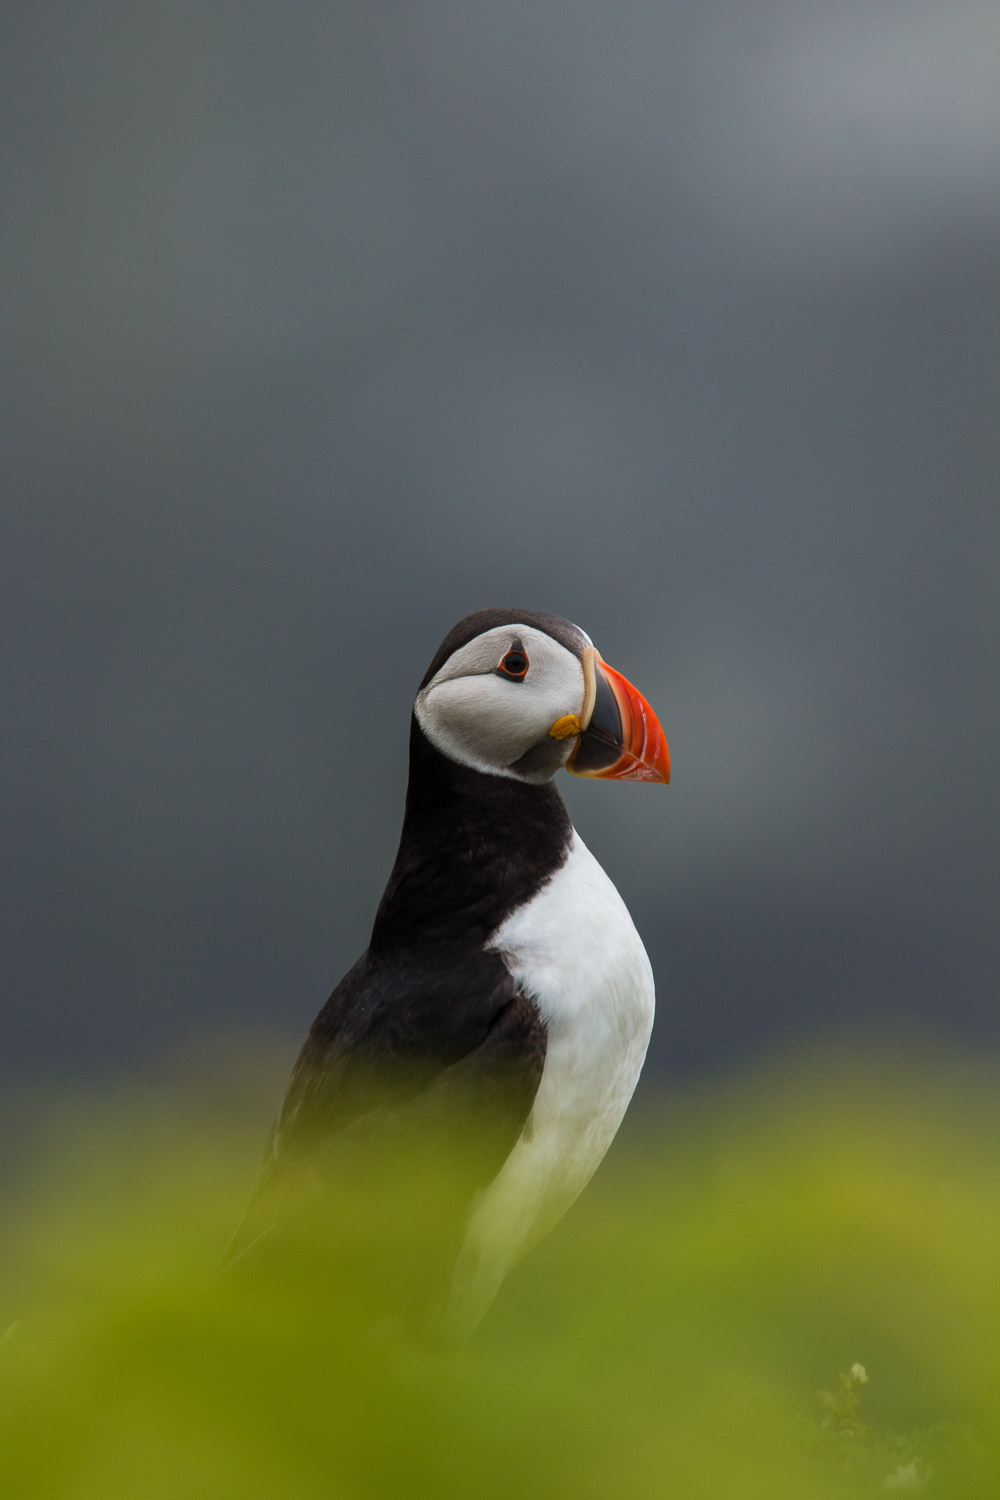 A puffin standing proud with a green foreground and grey background